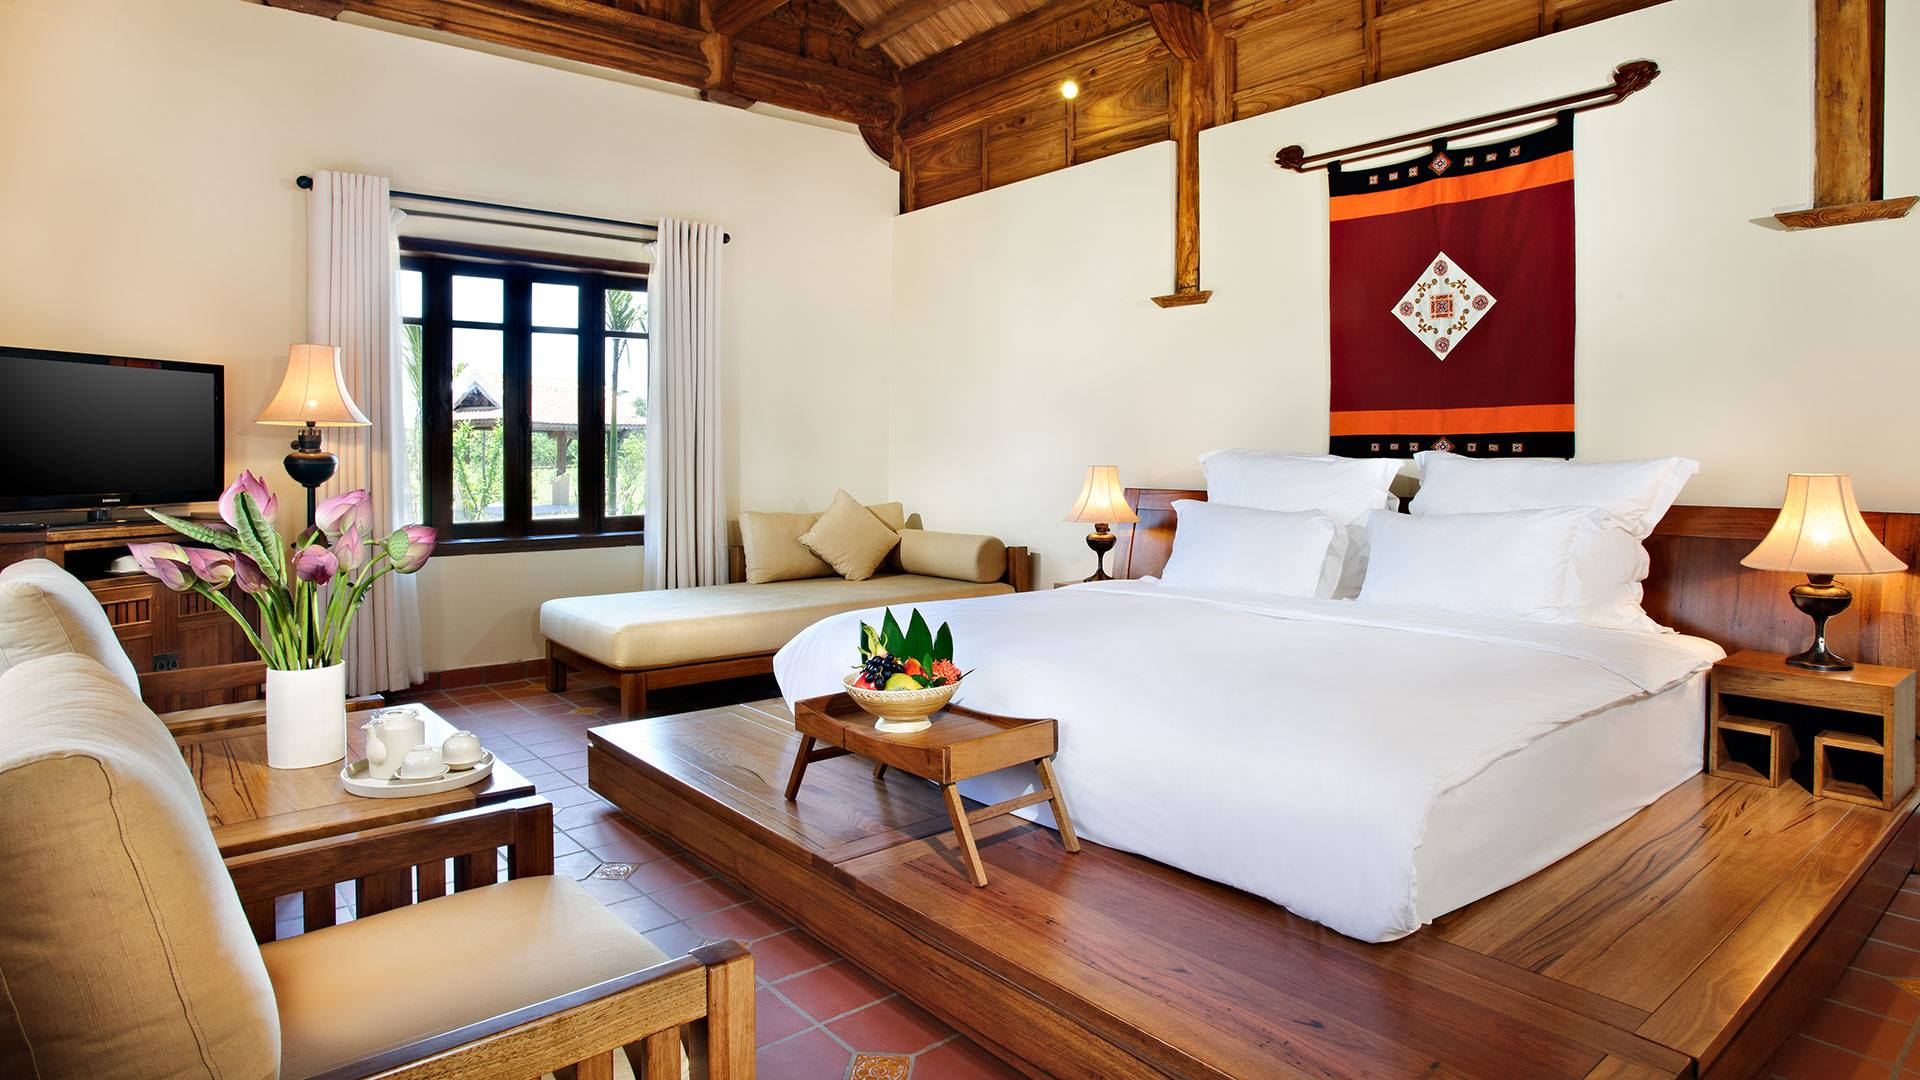 The resort boasts a total of 172 guest rooms from 50 to 107 square meters with wooden furniture and mountainous view